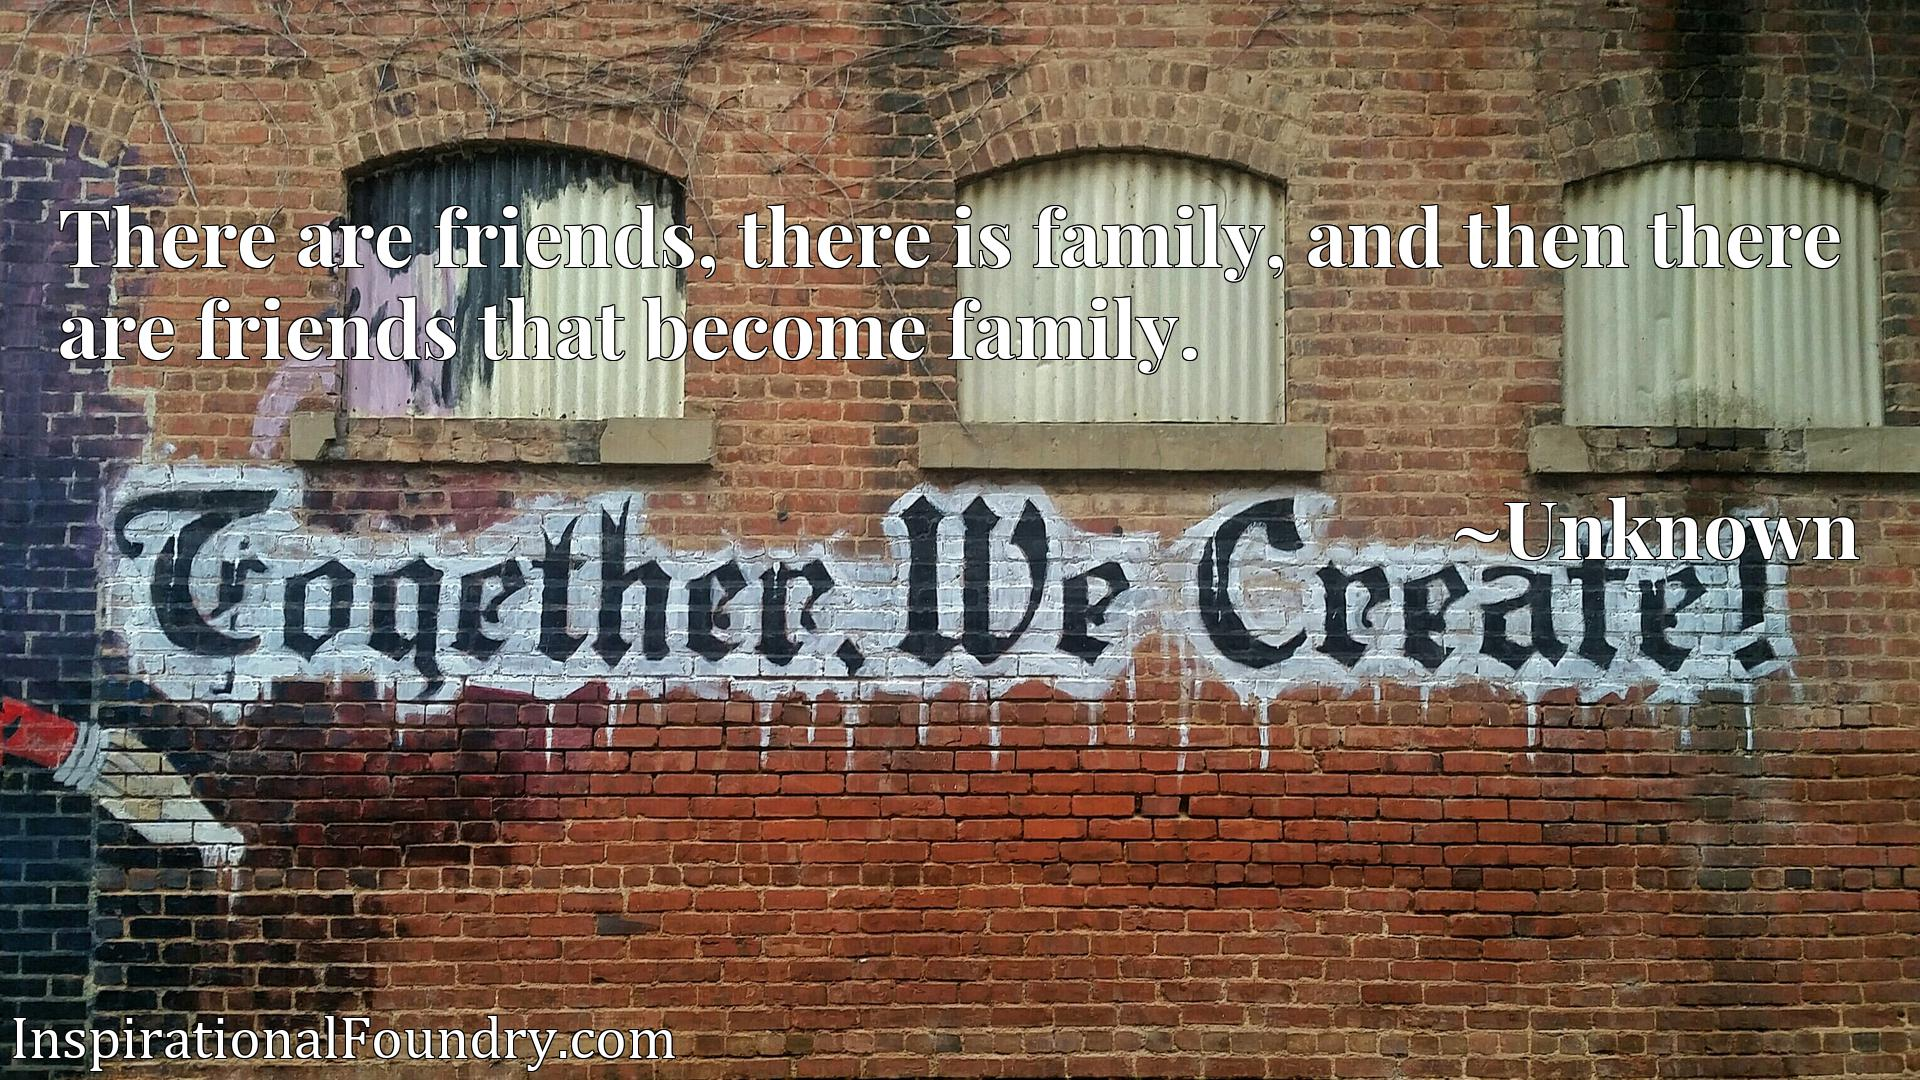 There are friends, there is family, and then there are friends that become family.